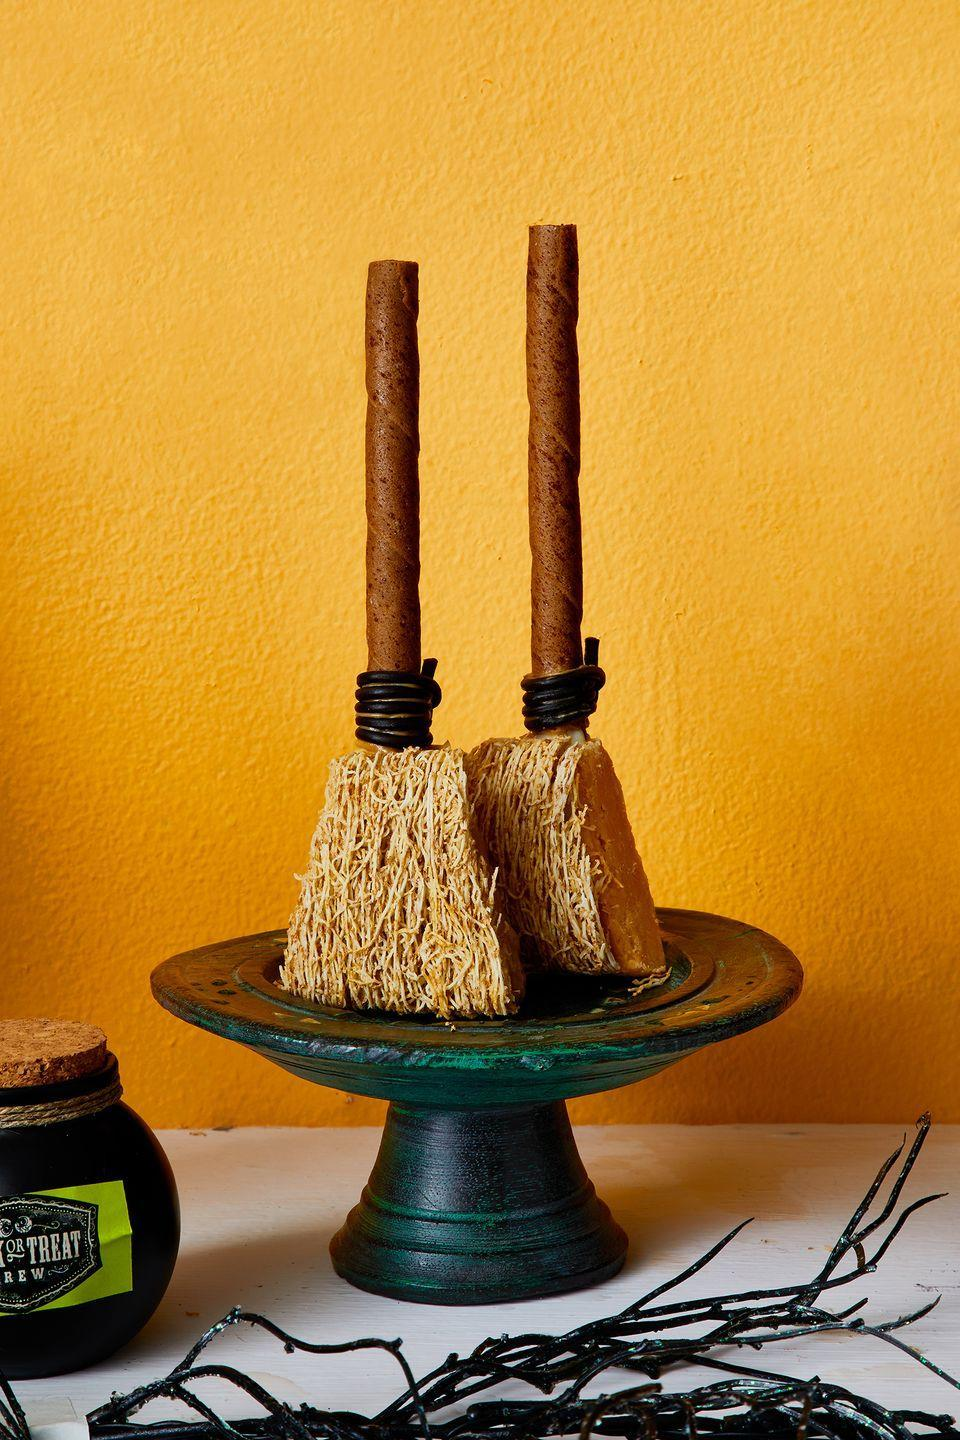 """<p>Boost your Halloween table's visual appeal with these mini fudge broomsticks that are almost too cute to eat. </p><p><a class=""""link rapid-noclick-resp"""" href=""""https://go.redirectingat.com?id=74968X1596630&url=https%3A%2F%2Fwww.walmart.com%2Fip%2FHERSHEYS-HOT-FUDGE-TOPPING-ICE-CREAM-TOPPING-GLASS-JAR-12-8-OZ-0034000008361%2F121570749&sref=https%3A%2F%2Fwww.goodhousekeeping.com%2Fholidays%2Fhalloween-ideas%2Fg33437890%2Fhalloween-table-decorations-centerpieces%2F"""" rel=""""nofollow noopener"""" target=""""_blank"""" data-ylk=""""slk:SHOP FUDGE"""">SHOP FUDGE</a></p>"""